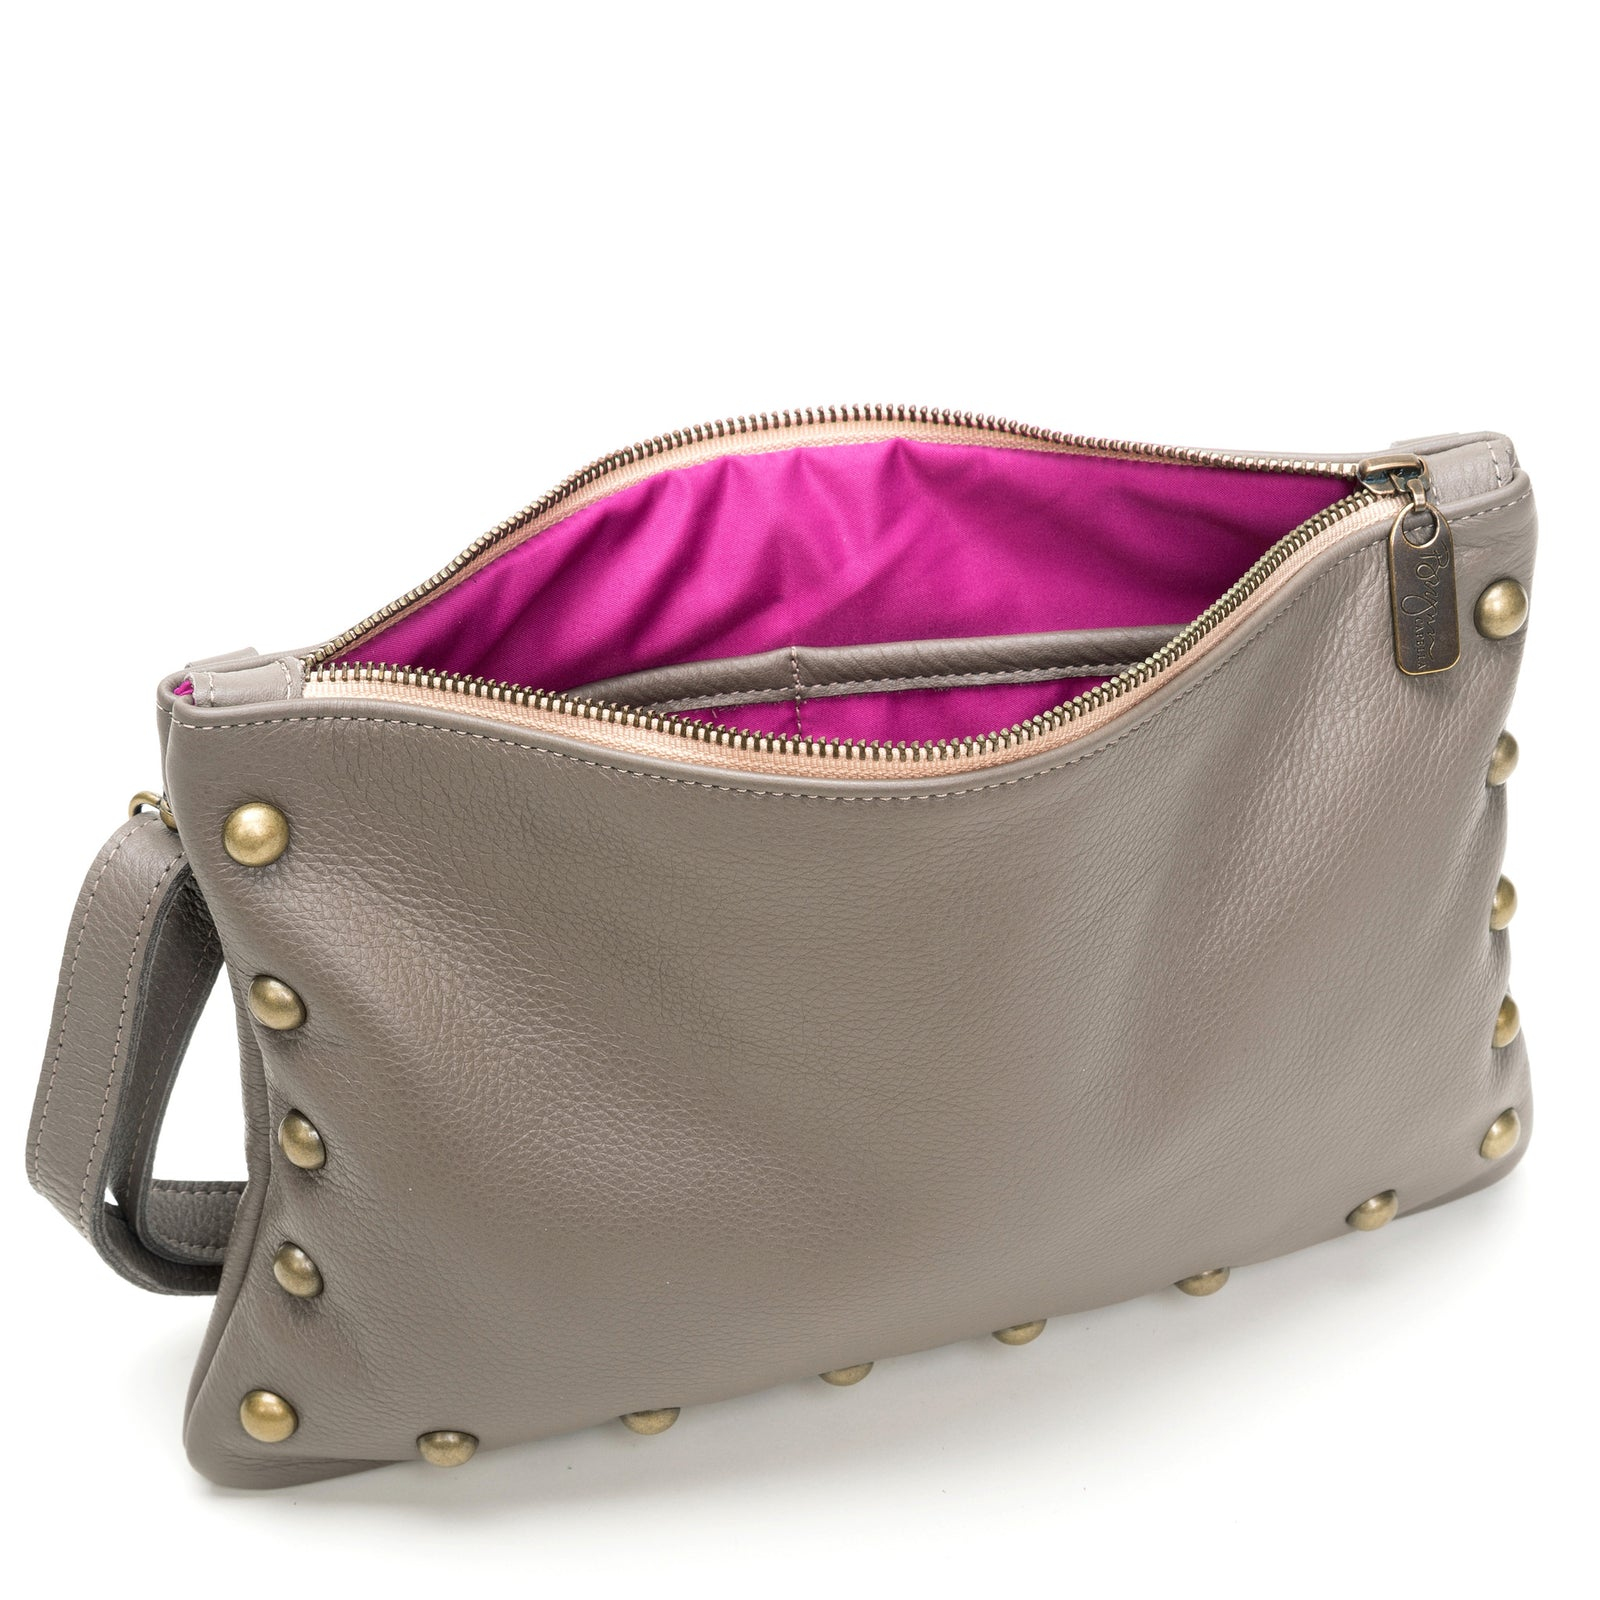 Nikki Clutch/Crossbody - Oyster Shell - Brynn Capella, Small Crossbody